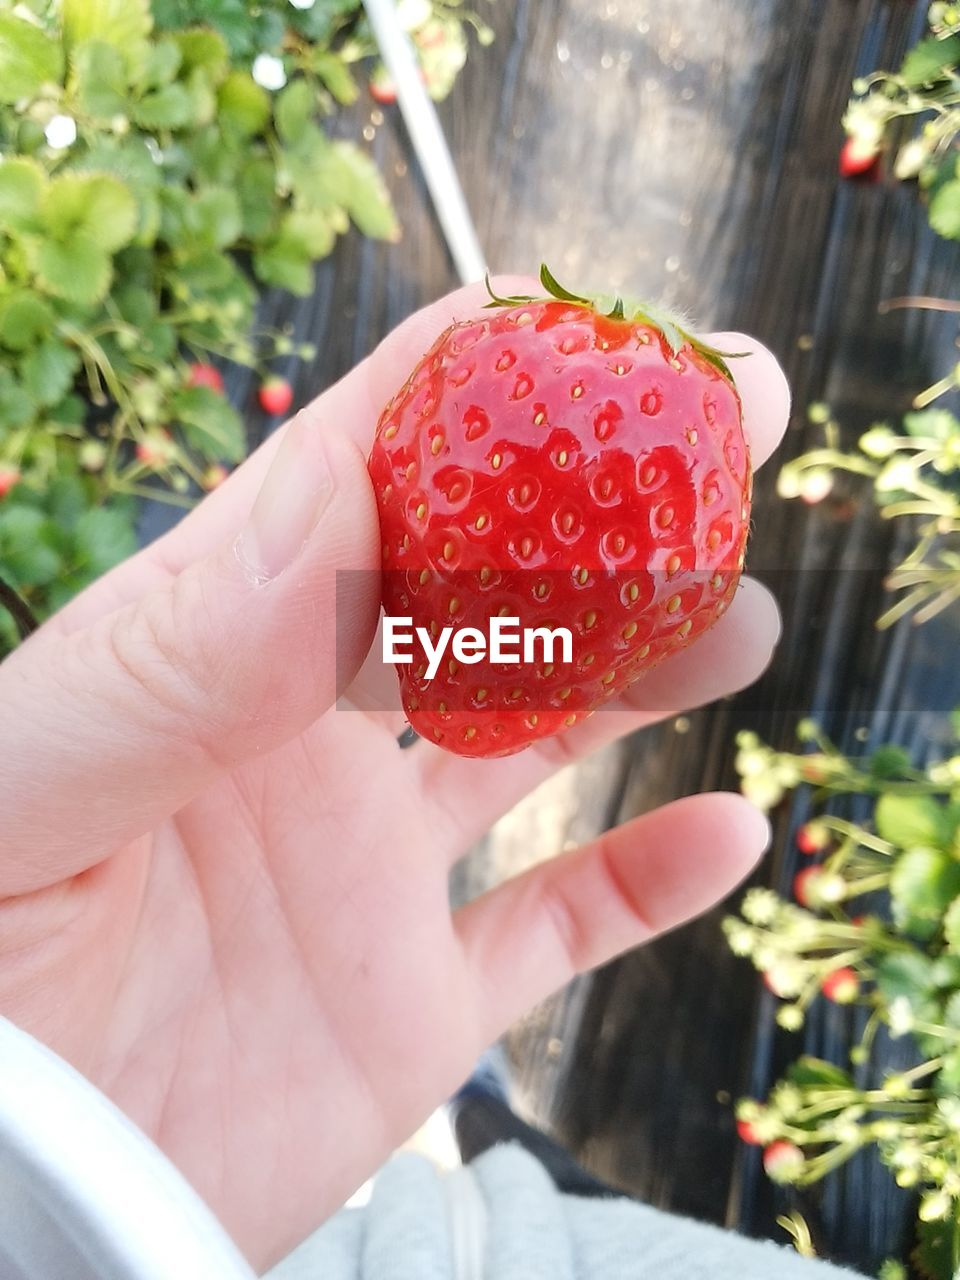 human hand, strawberry, human body part, fruit, one person, real people, food and drink, freshness, food, healthy eating, human finger, red, holding, outdoors, day, focus on foreground, close-up, lifestyles, sunlight, sweet food, healthy lifestyle, women, nature, ready-to-eat, people